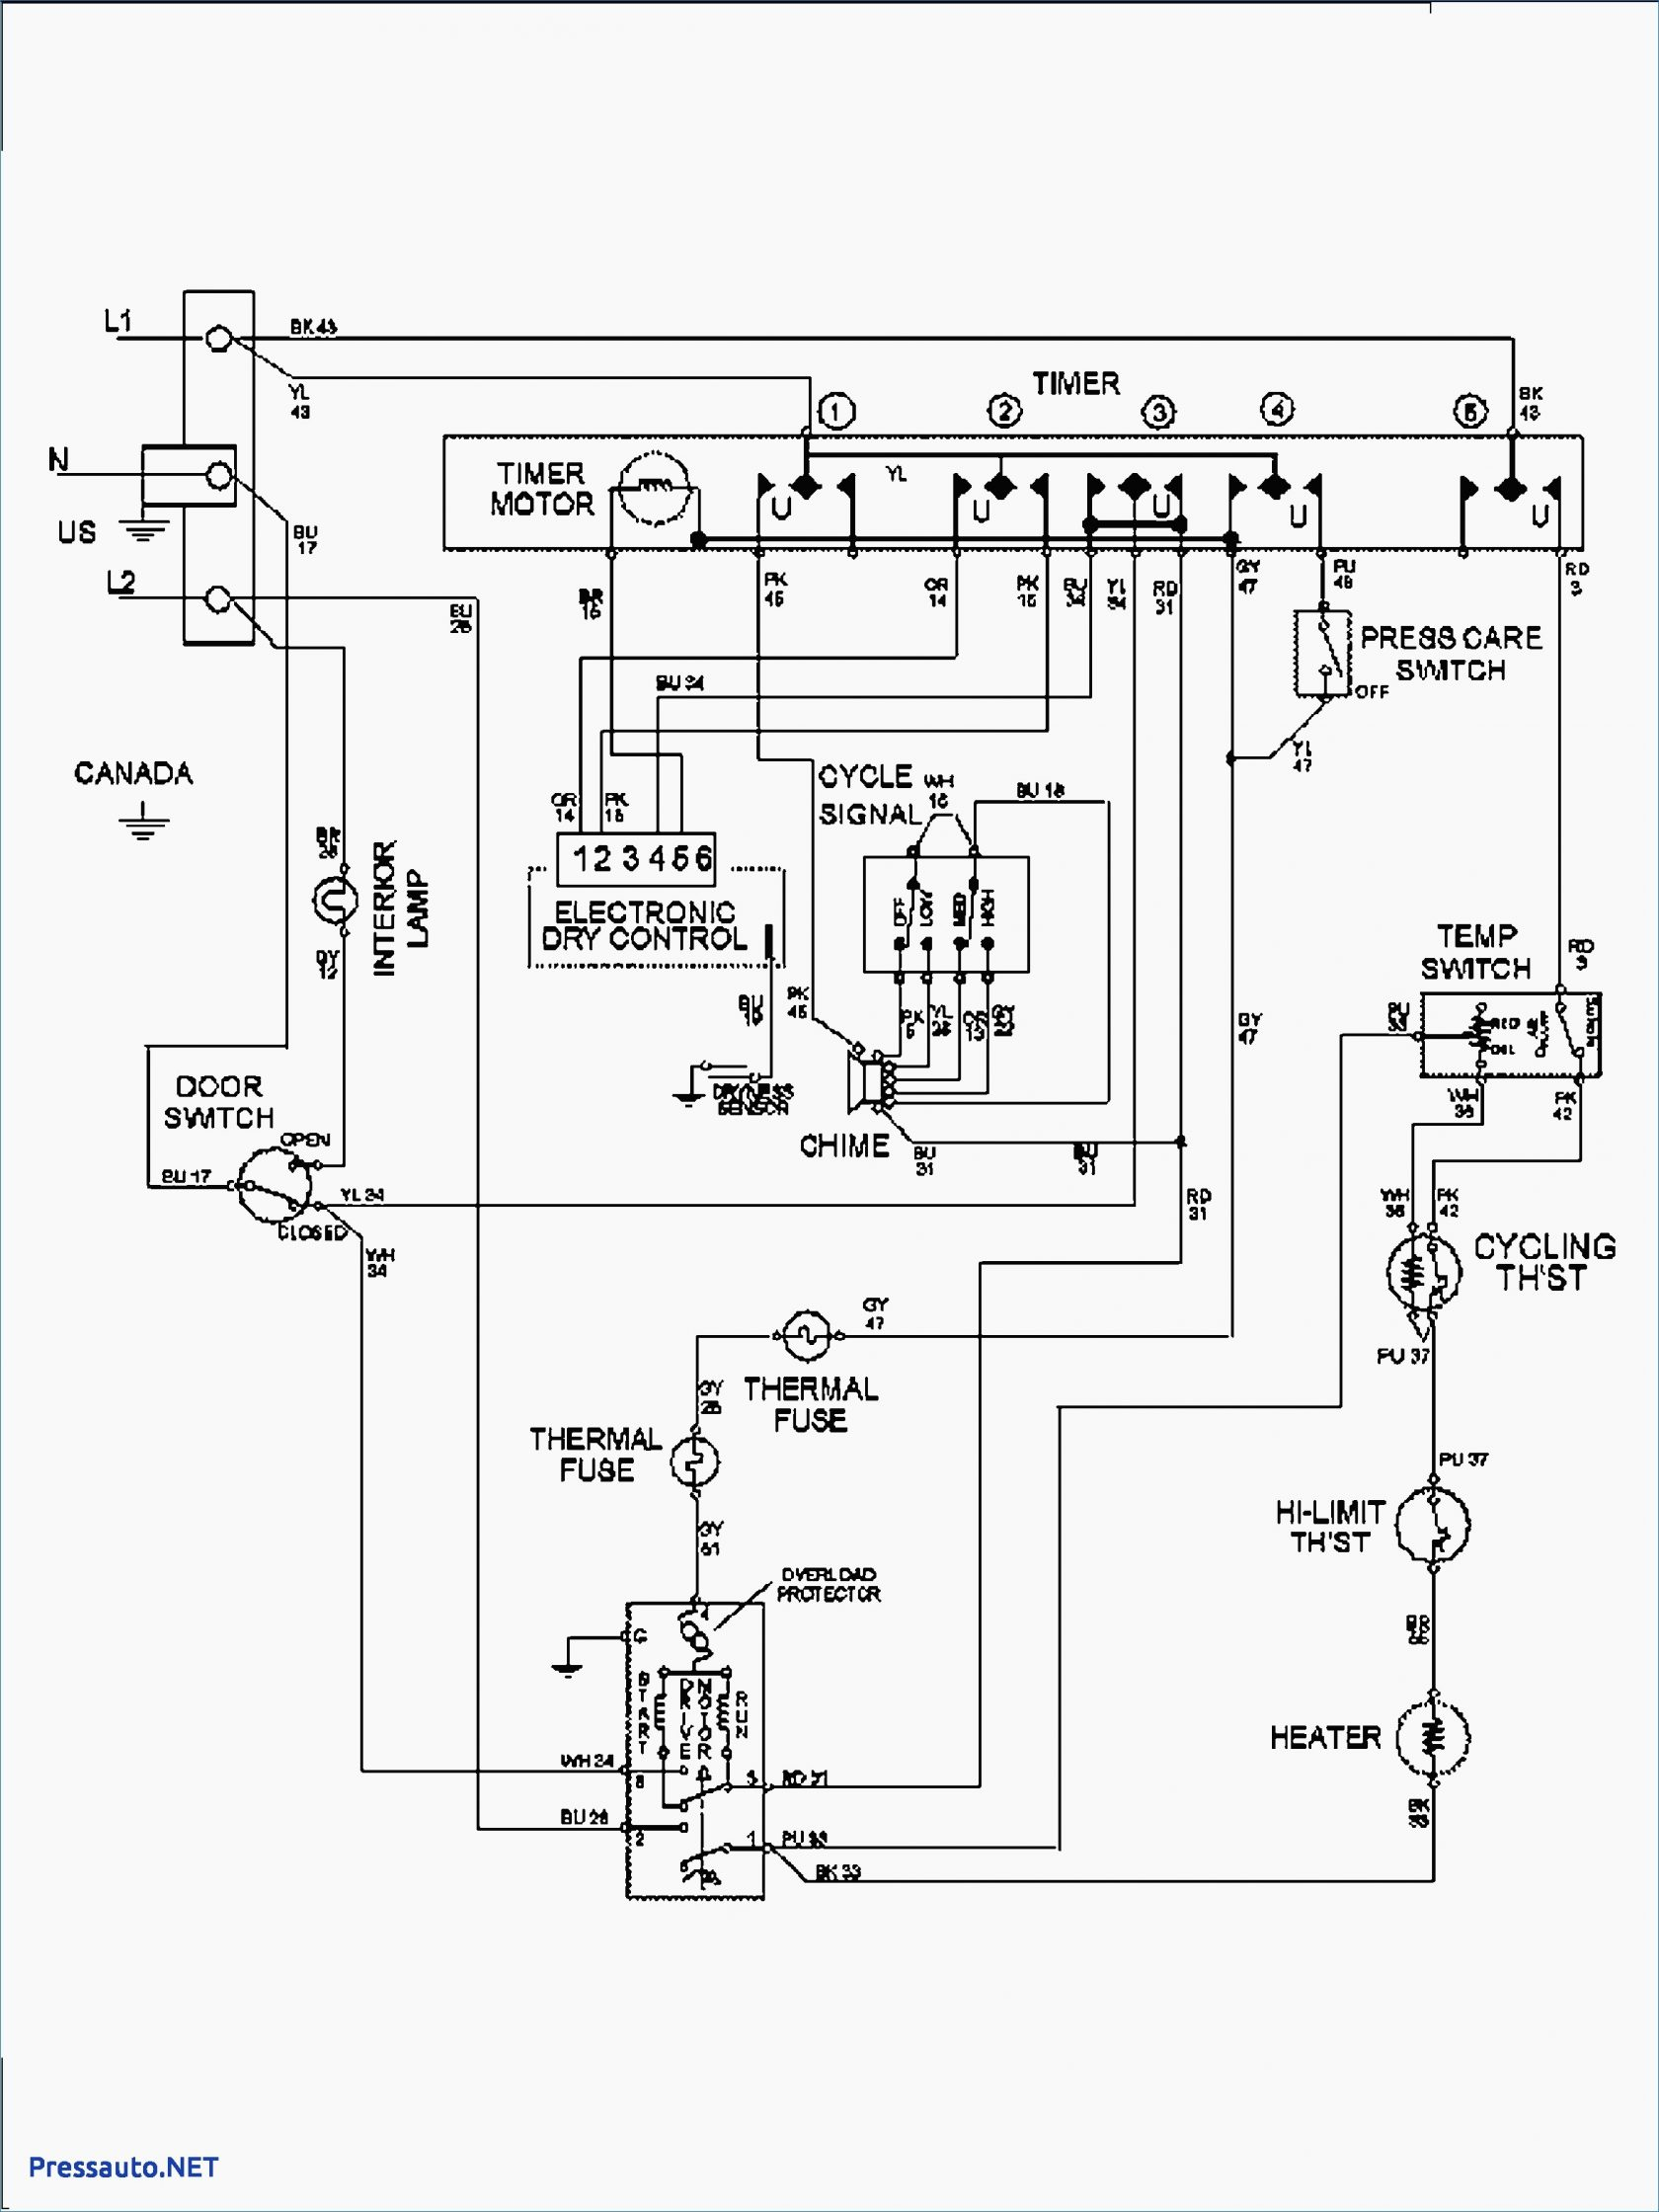 Thermostat Drawing At Free For Personal Use Ruud Silhouette Schematic Wiring Diagram 1680x2240 Amana Ads S8 Serviceanual In Heat Pump And Ptac